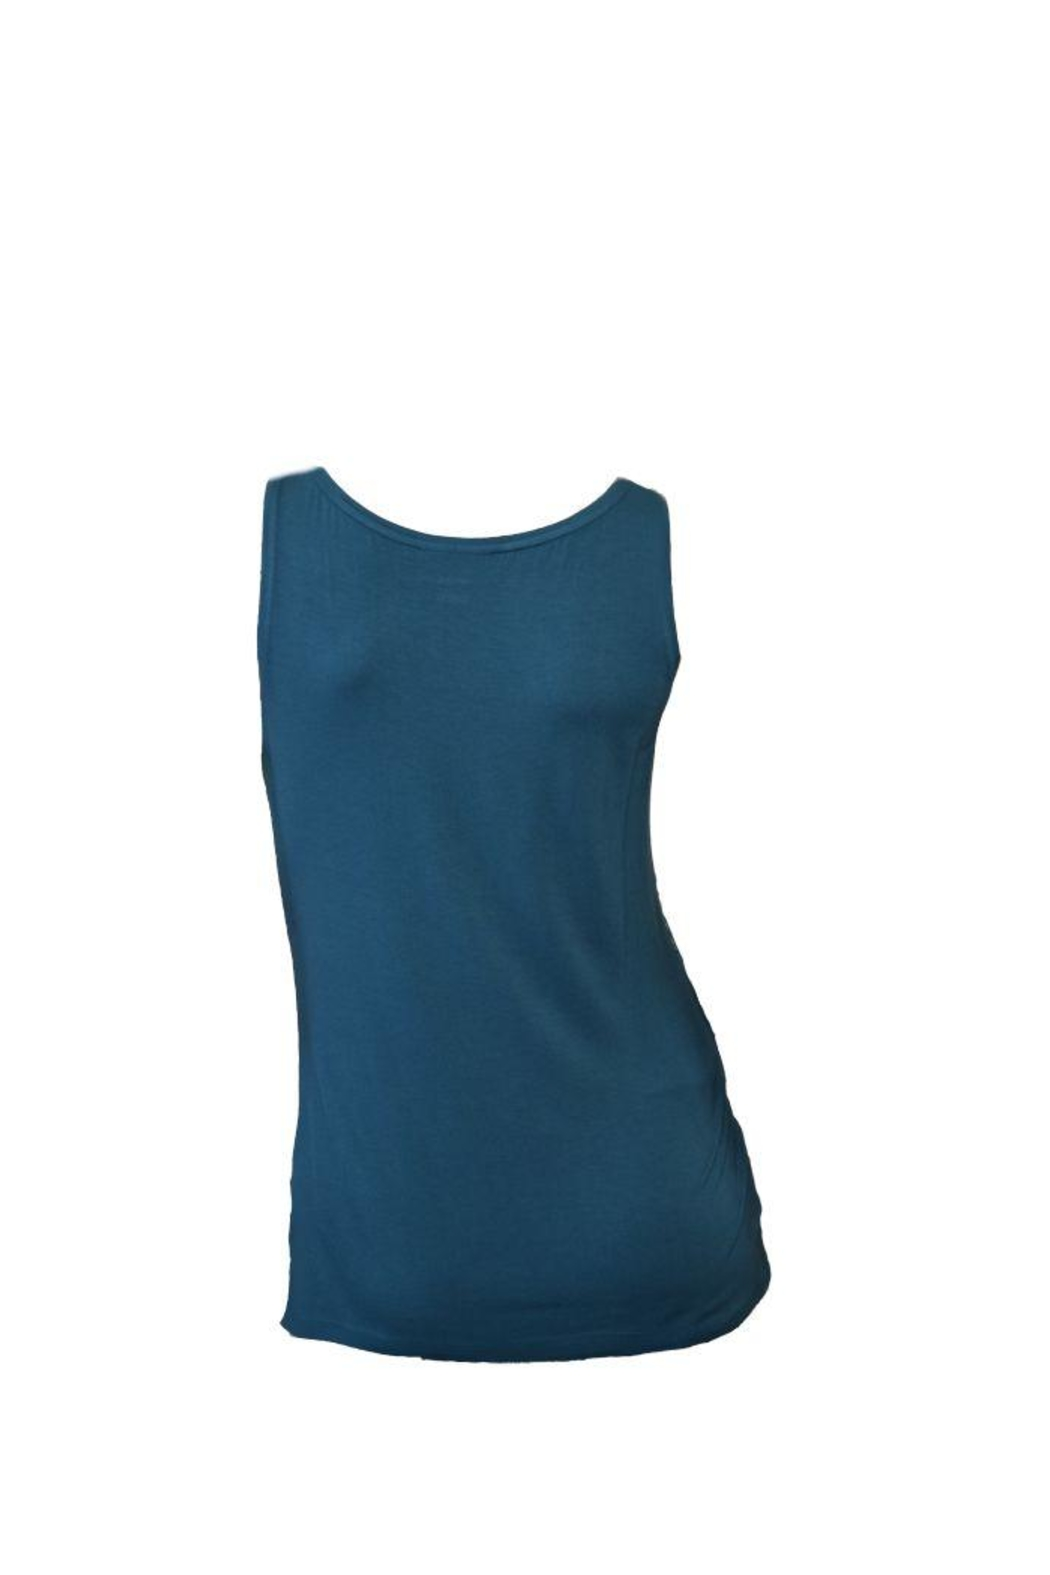 The Dressing Room Teal Sequin Tank - Front Full Image